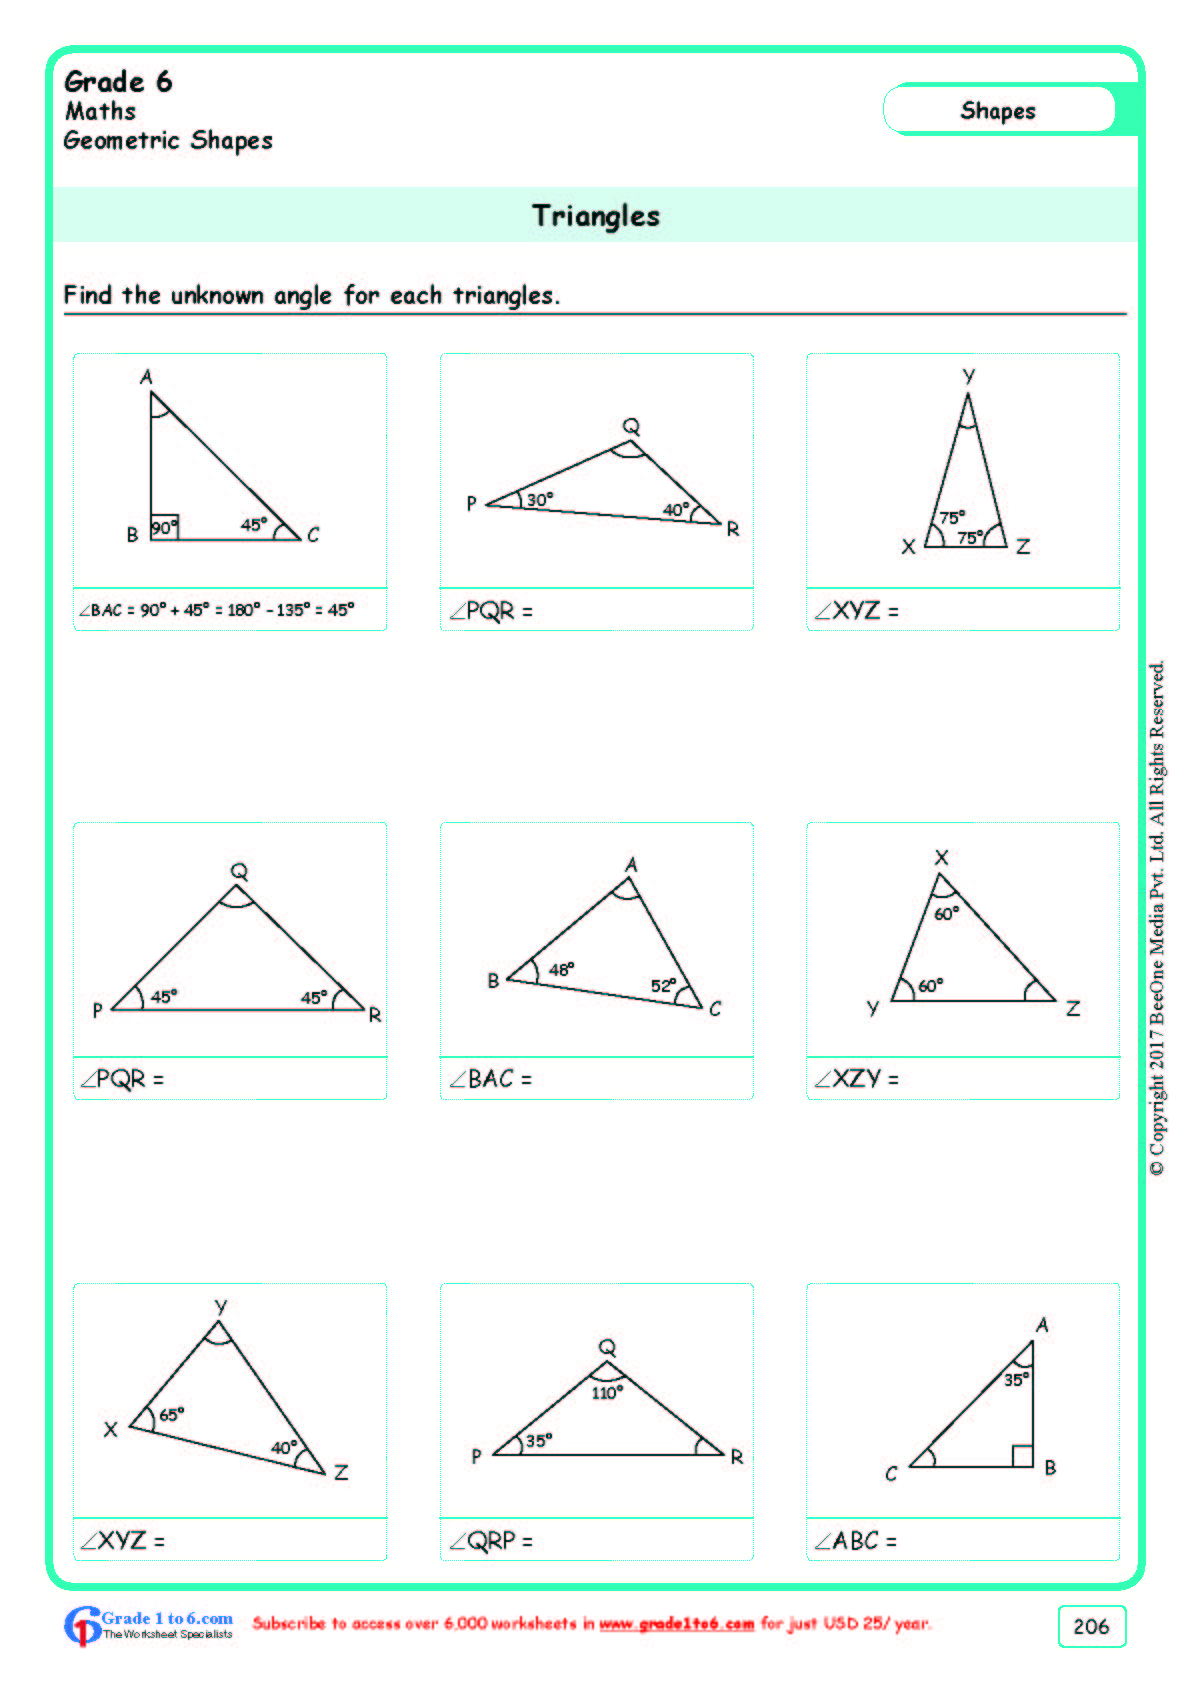 hight resolution of Angles of a Triangle Worksheets Grade 6 www.grade1to6.com